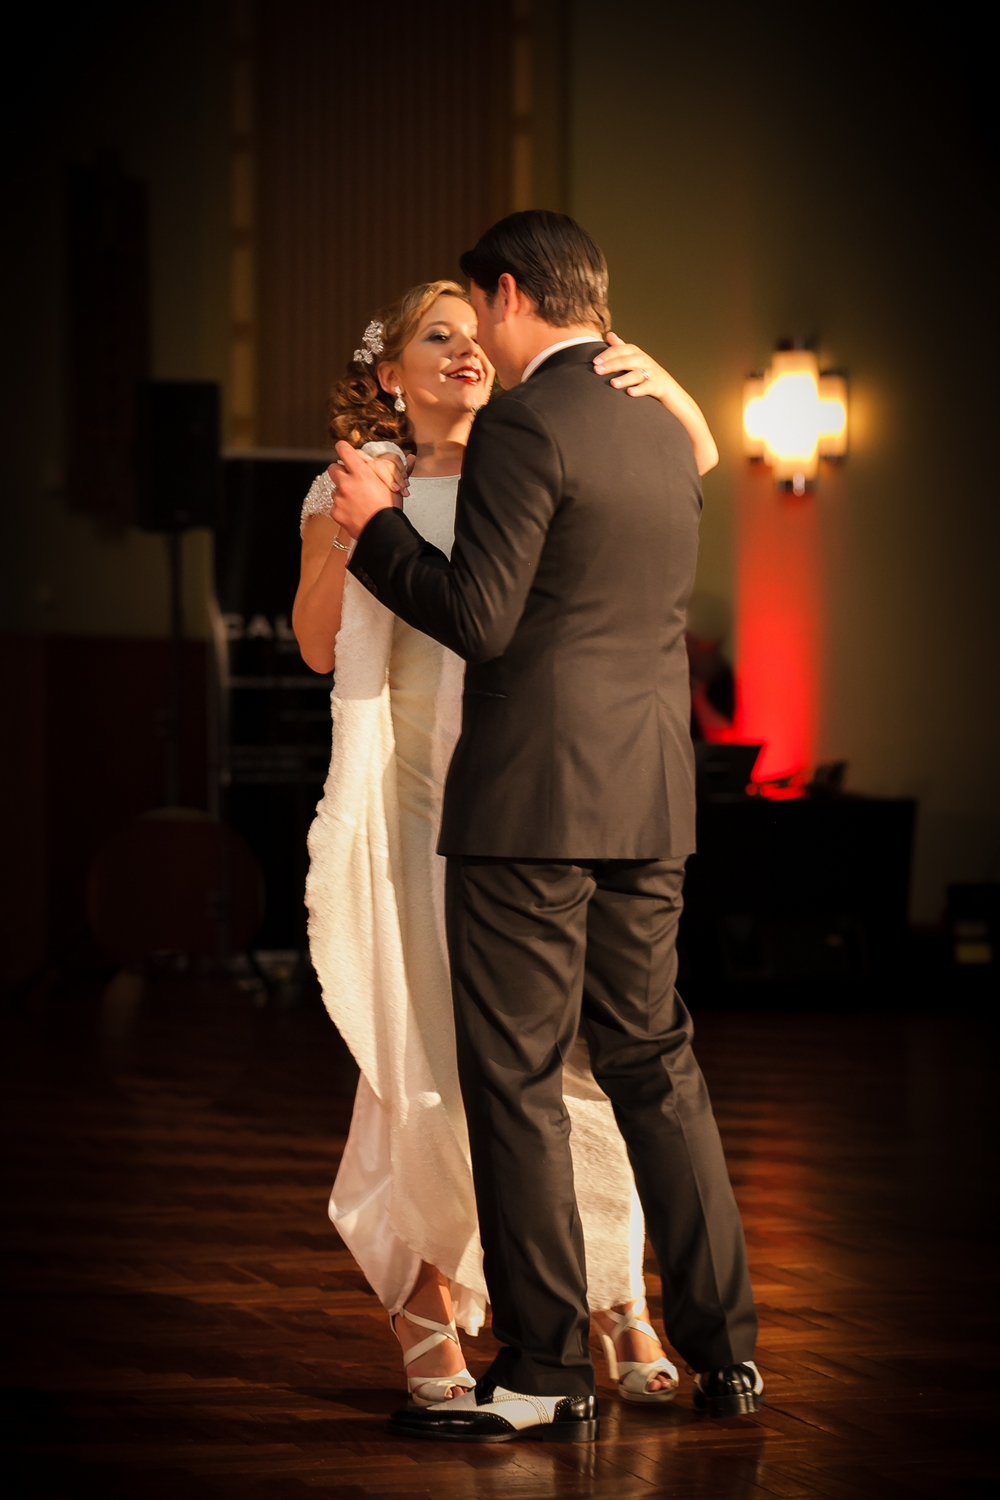 snez-neil-first-dance-final.jpg